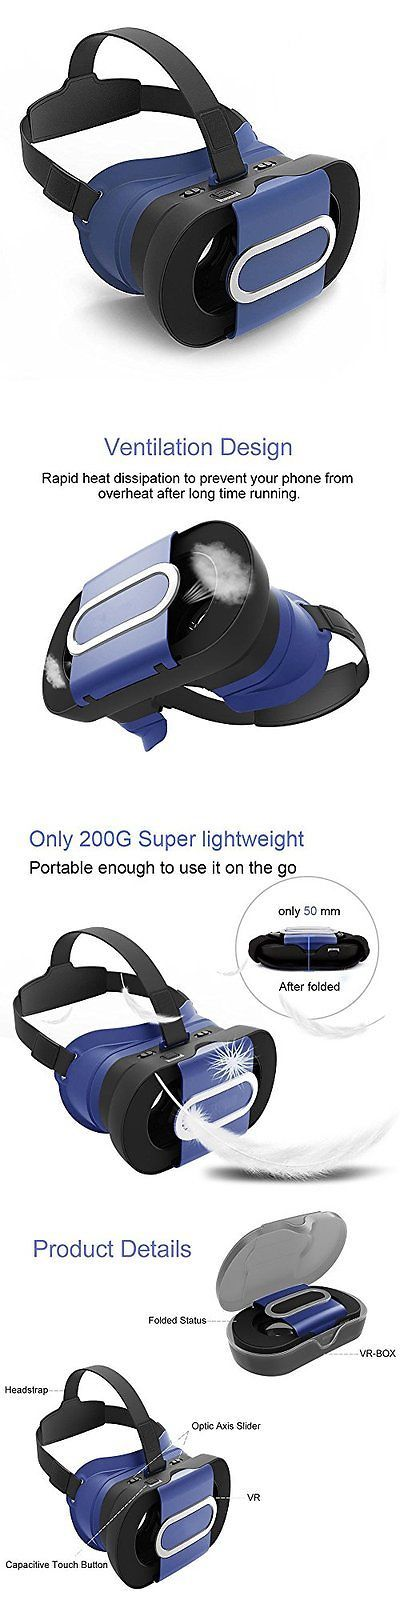 Smartphone VR Headsets: Headset Vr Glasses Virtual Reality 3D Games For Android Ios Iphone Samsung Blue BUY IT NOW ONLY: $30.07